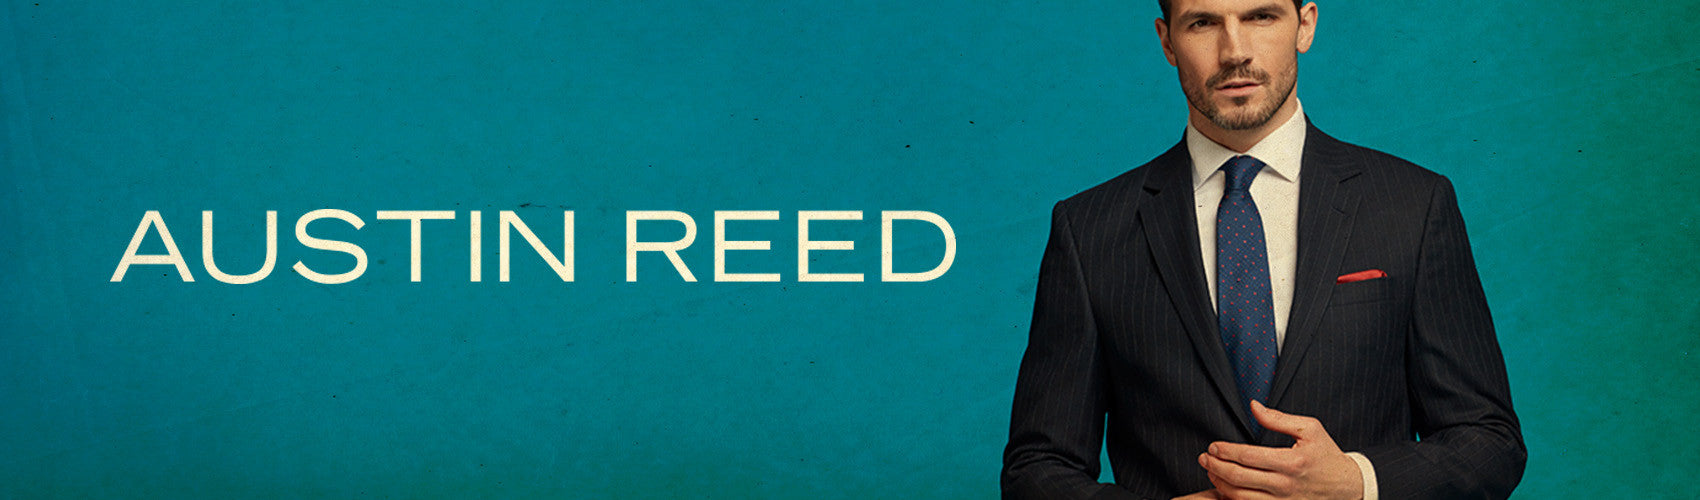 Austin Reed suits and jackets